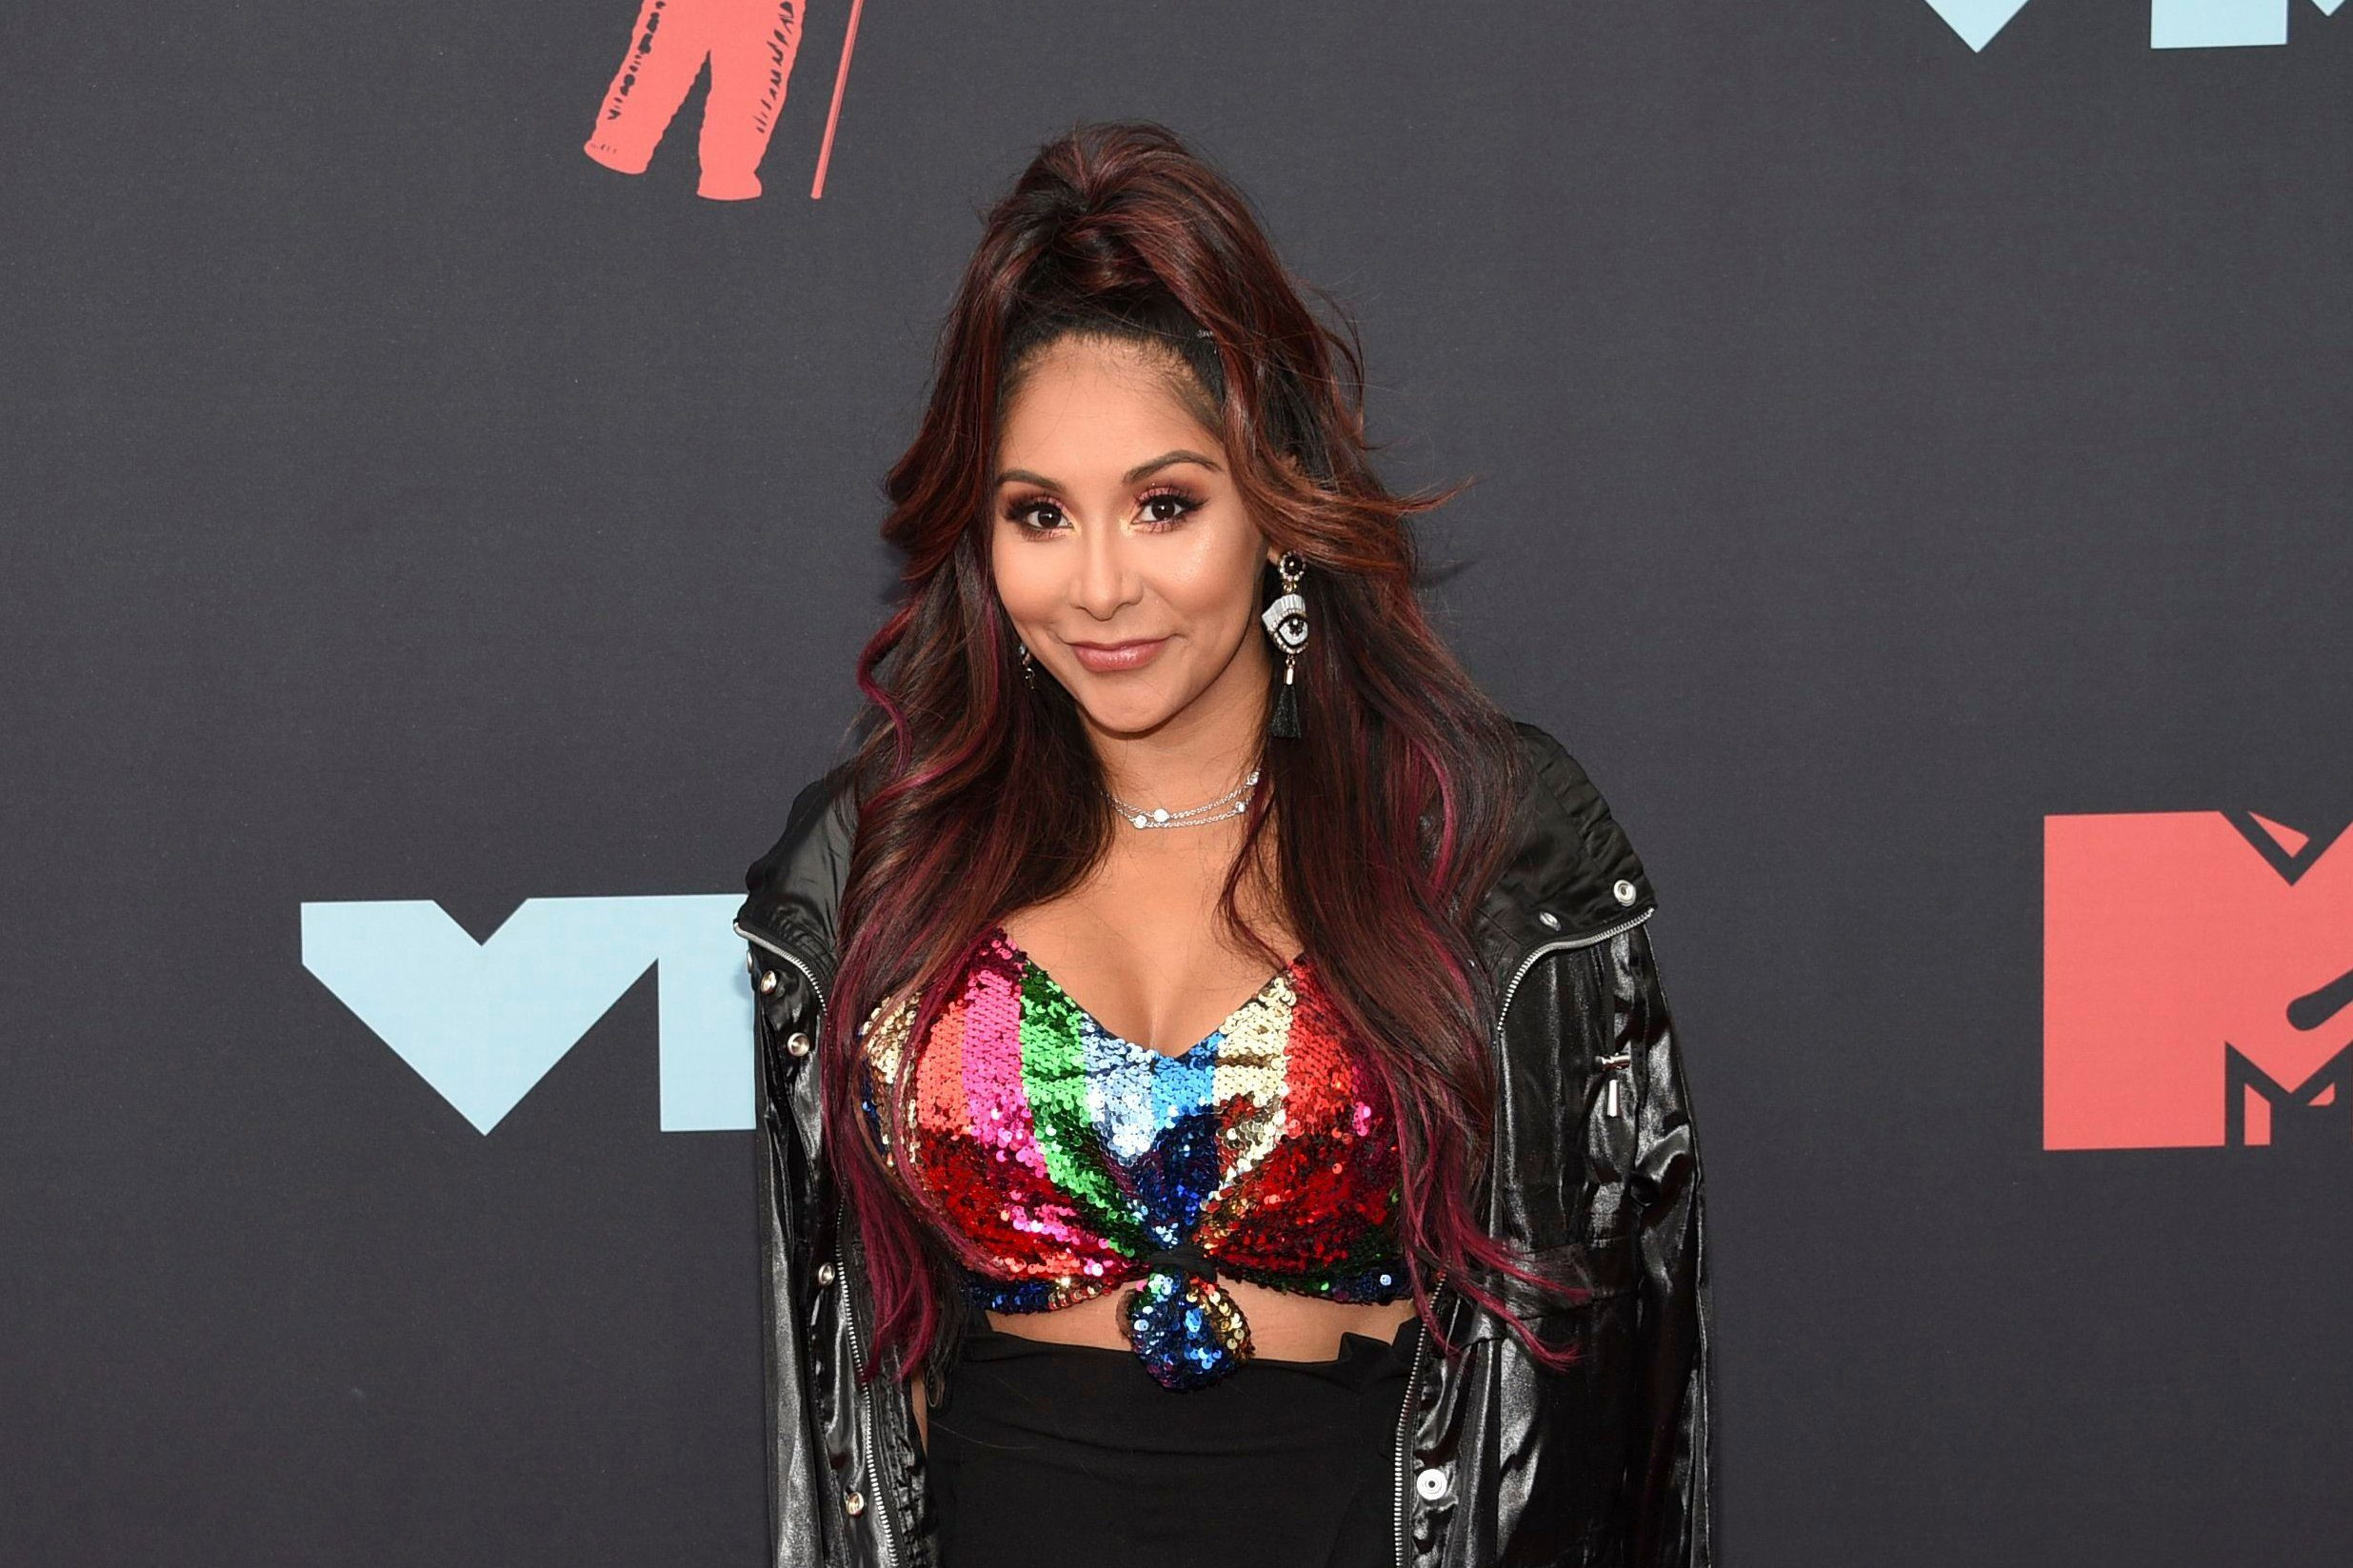 """Mandatory Credit: Photo by Evan Agostini/Invision/AP/Shutterstock (10372528cc) Nicole Snooki Polizzi. Nicole """" Nicole Snooki Polizzi """" Polizzi arrives at the MTV Video Music Awards at the Prudential Center, in Newark, N.J 2019 MTV Video Music Awards - Arrivals, Newark, USA - 26 Aug 2019"""